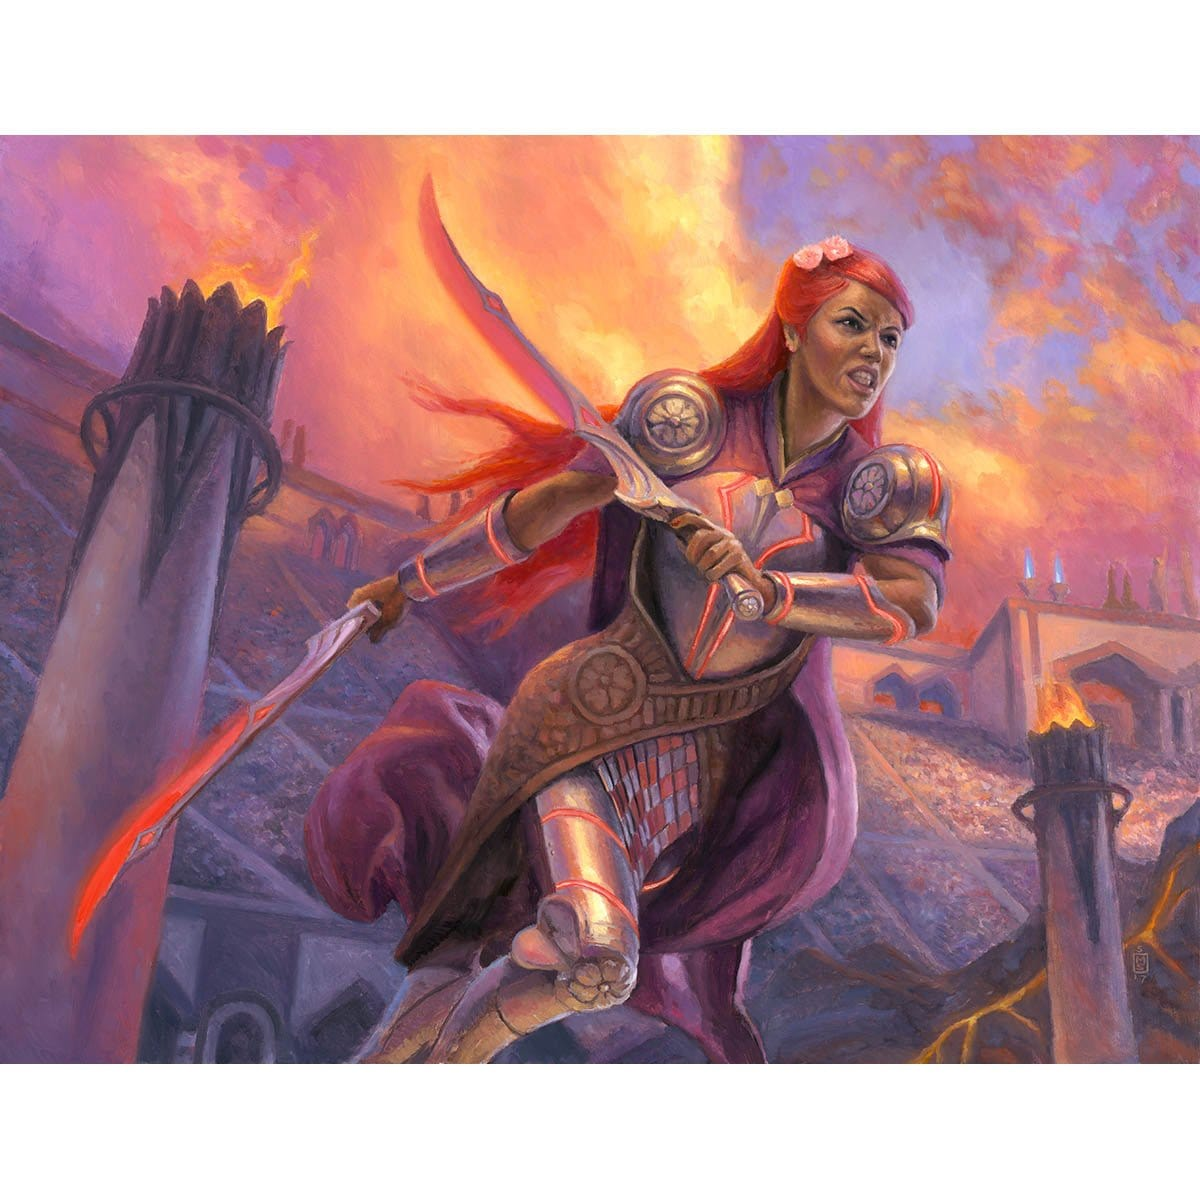 Najeela, the Blade-Blossom Print - Print - Original Magic Art - Accessories for Magic the Gathering and other card games